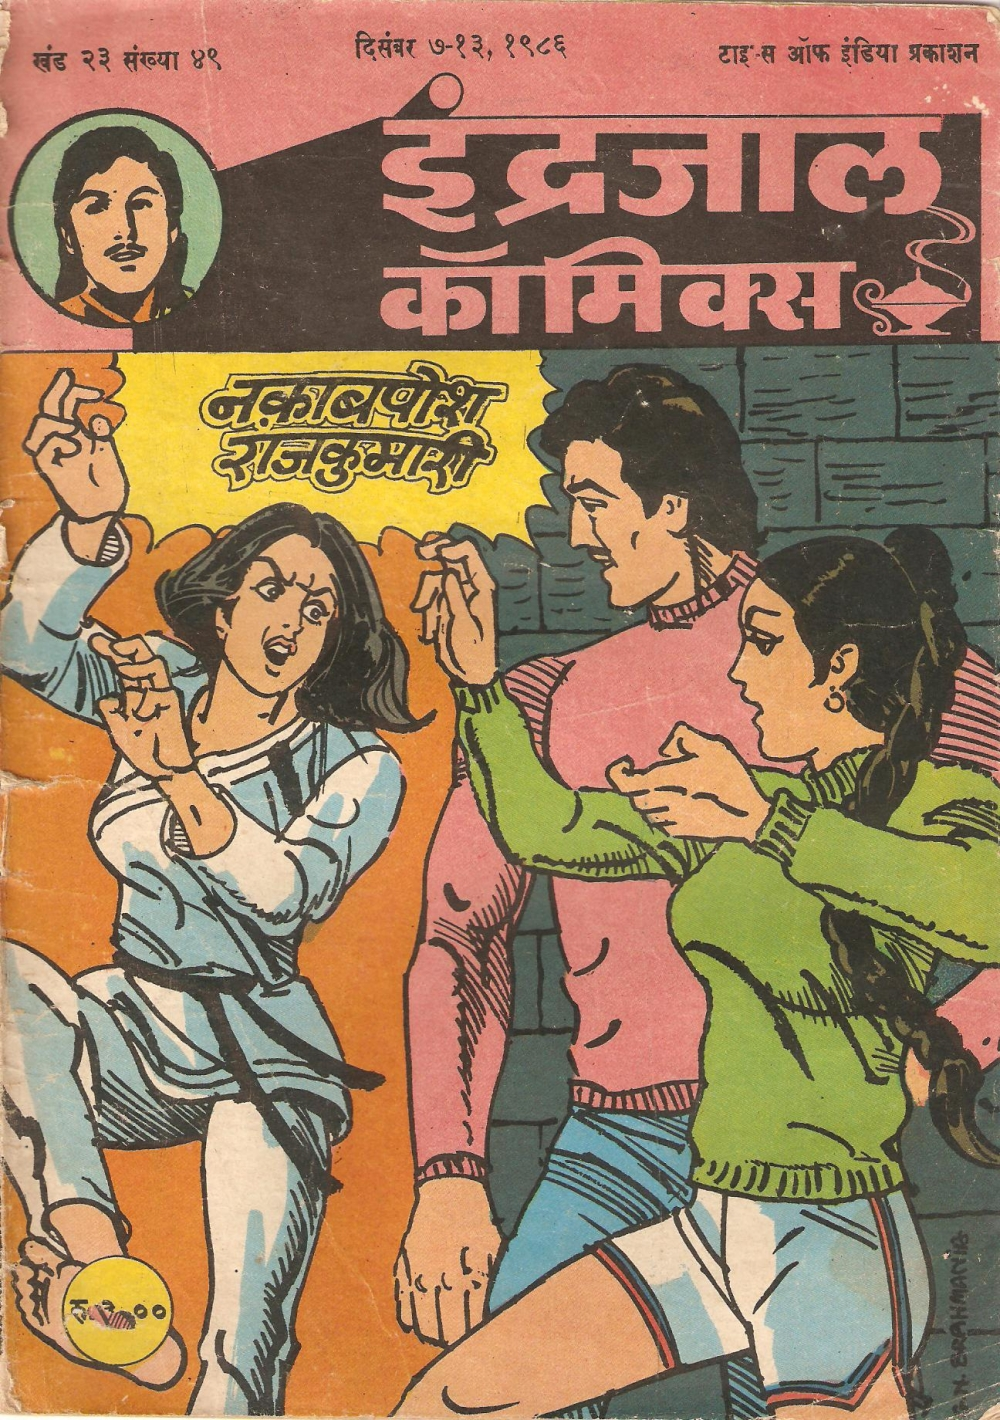 Fig. 2. Bahadur was the first indigenous comic book hero. Created by Abid Surti, it quickly became very popular. One of the most important aspects of this series was the presence of Bela, Bahadur's live-in girlfriend who gradually became an equal partner in his adventures (Courtesy: Rahul Kumar)